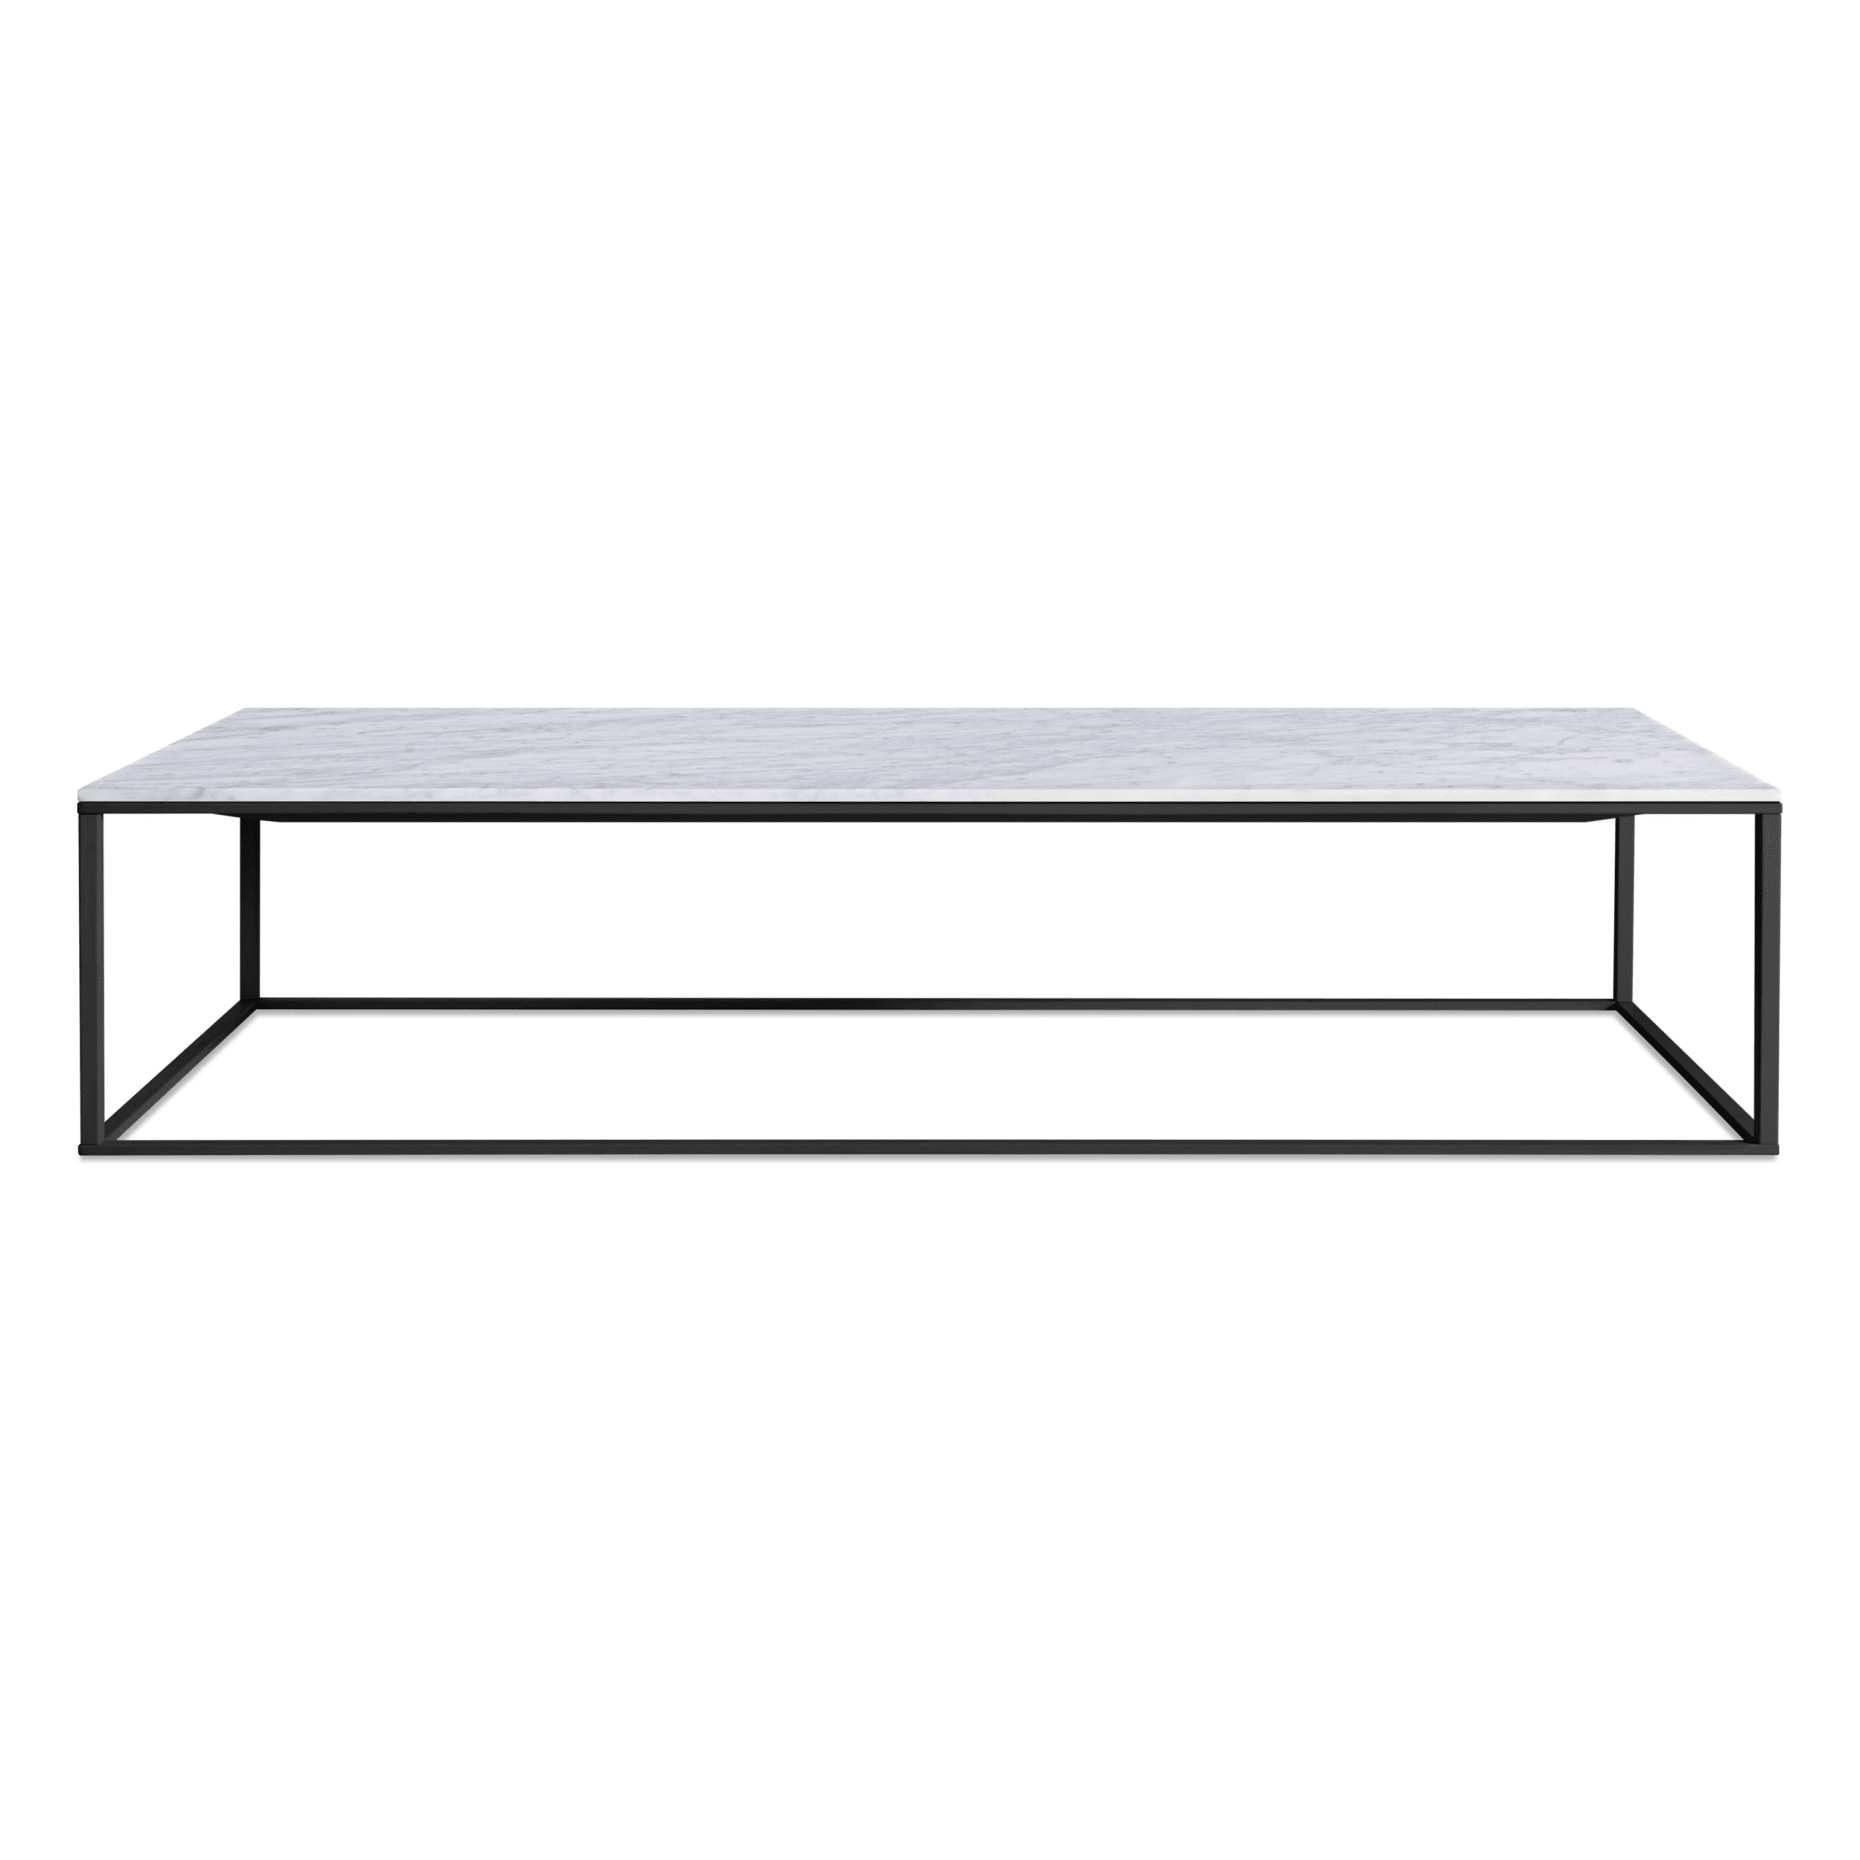 Couch Coffee Table Png Black And White Free Couch Coffee Table Black And White Png Transparent Images 23443 Pngio